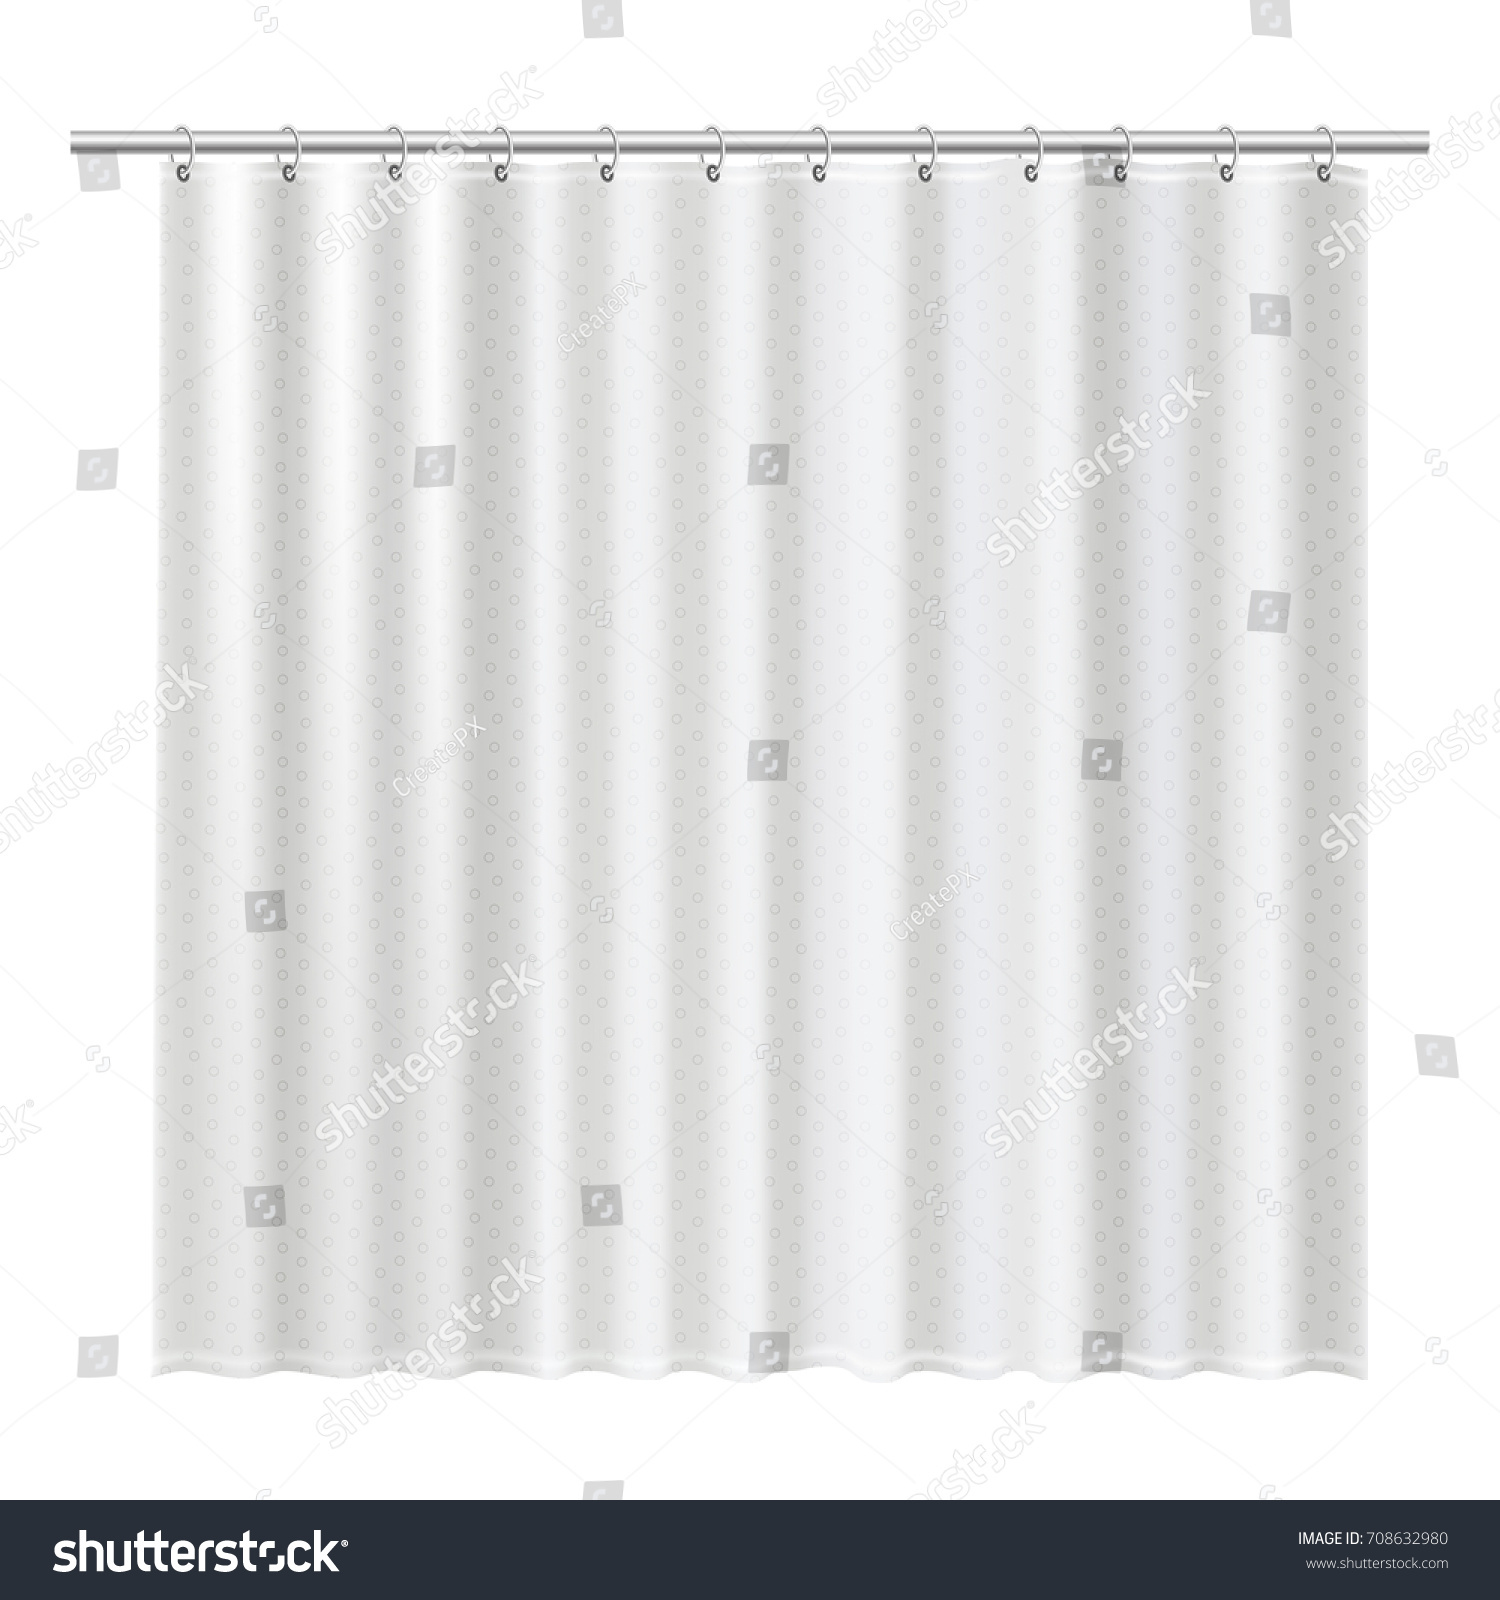 Blank Shower Curtains Mock Show Your Stock Vector 708632980 ...